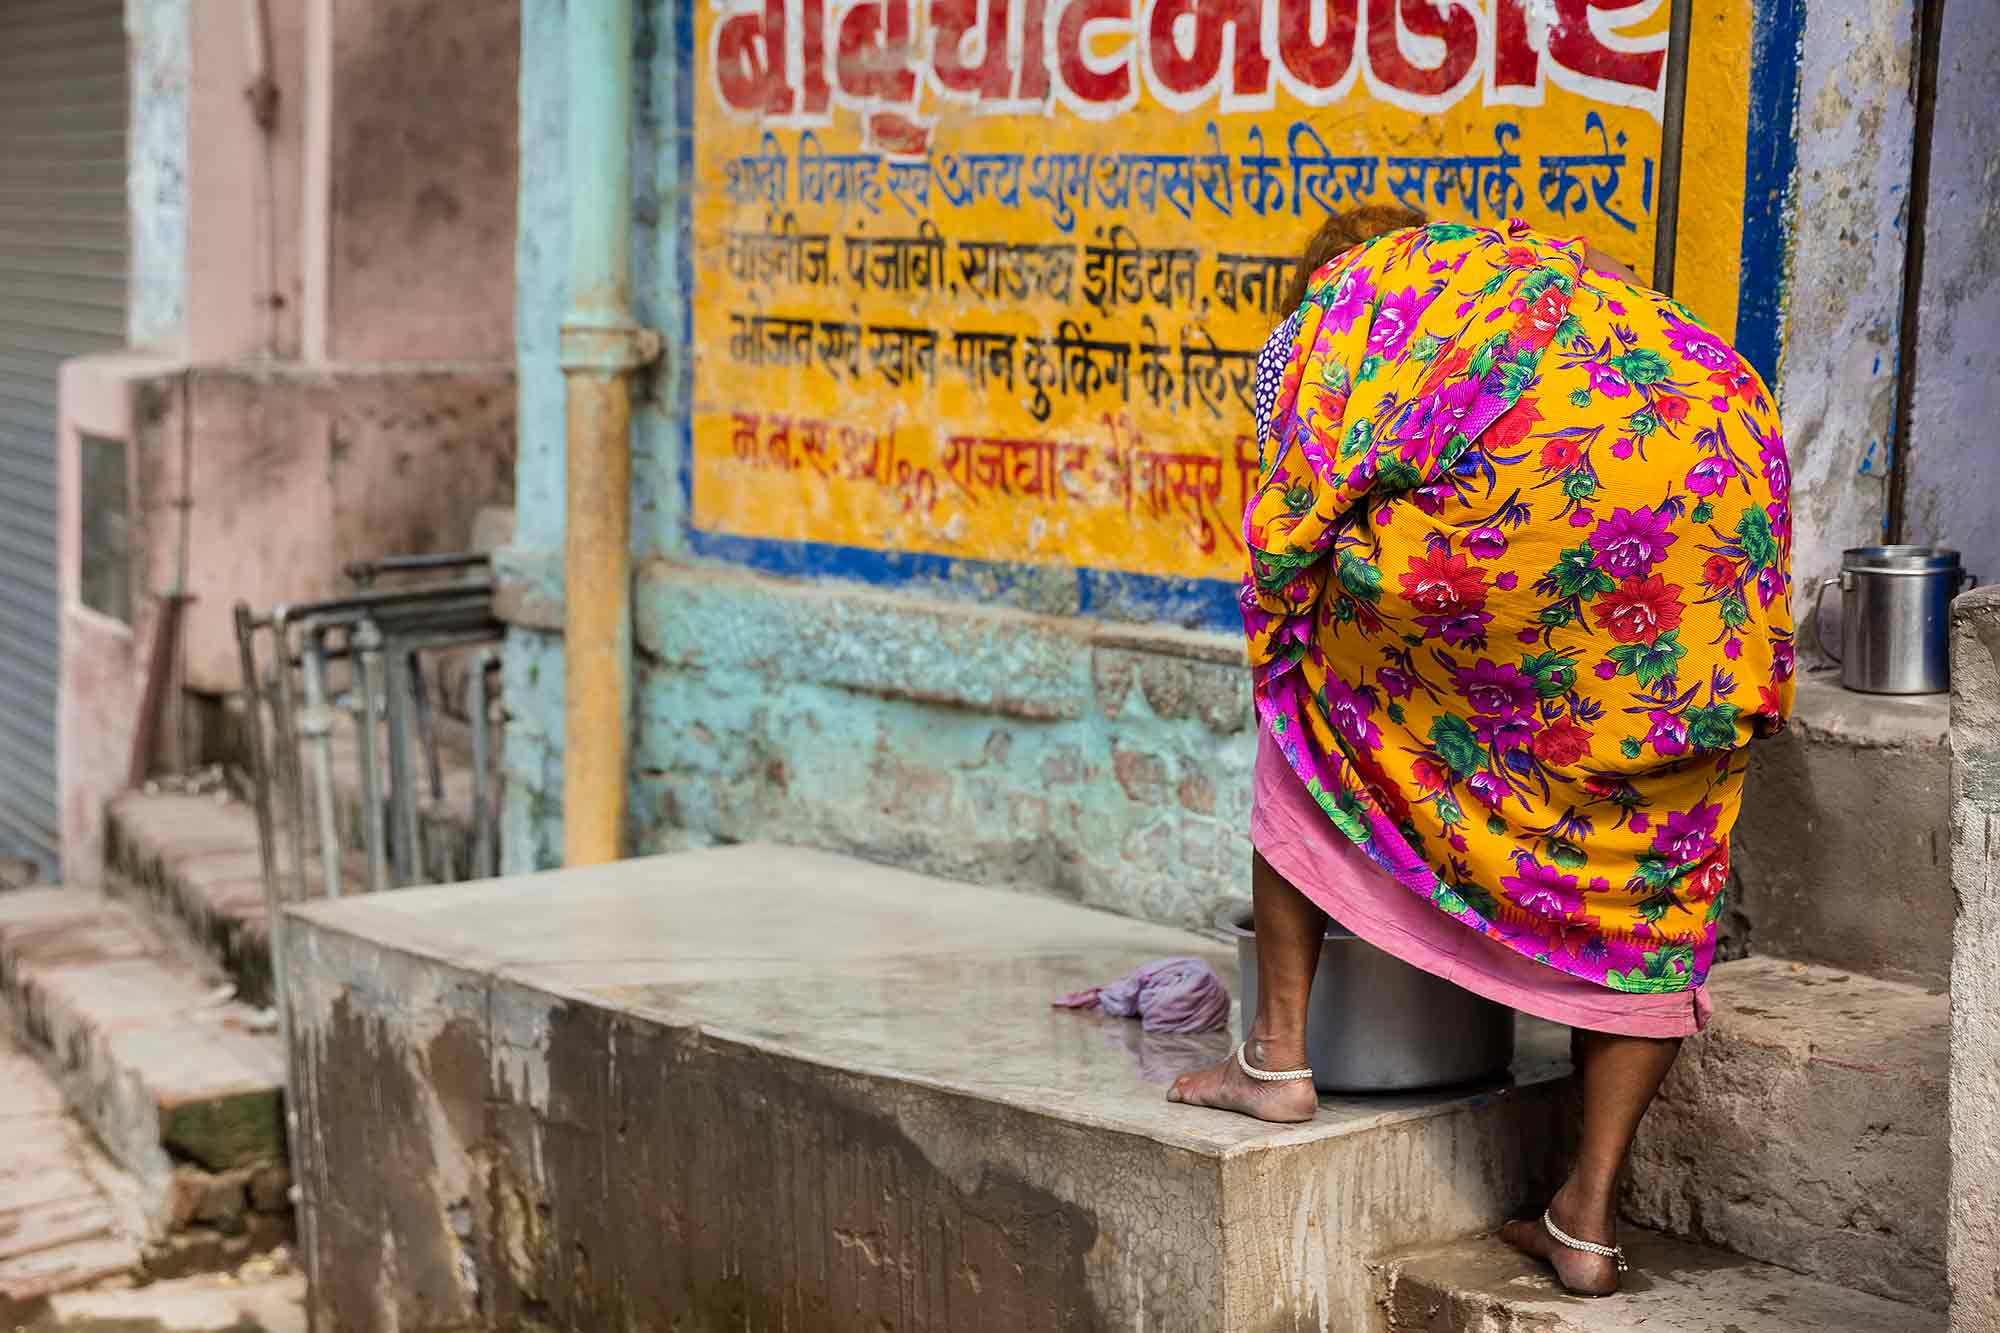 woman-washing-cloths-streets-varanasi-india